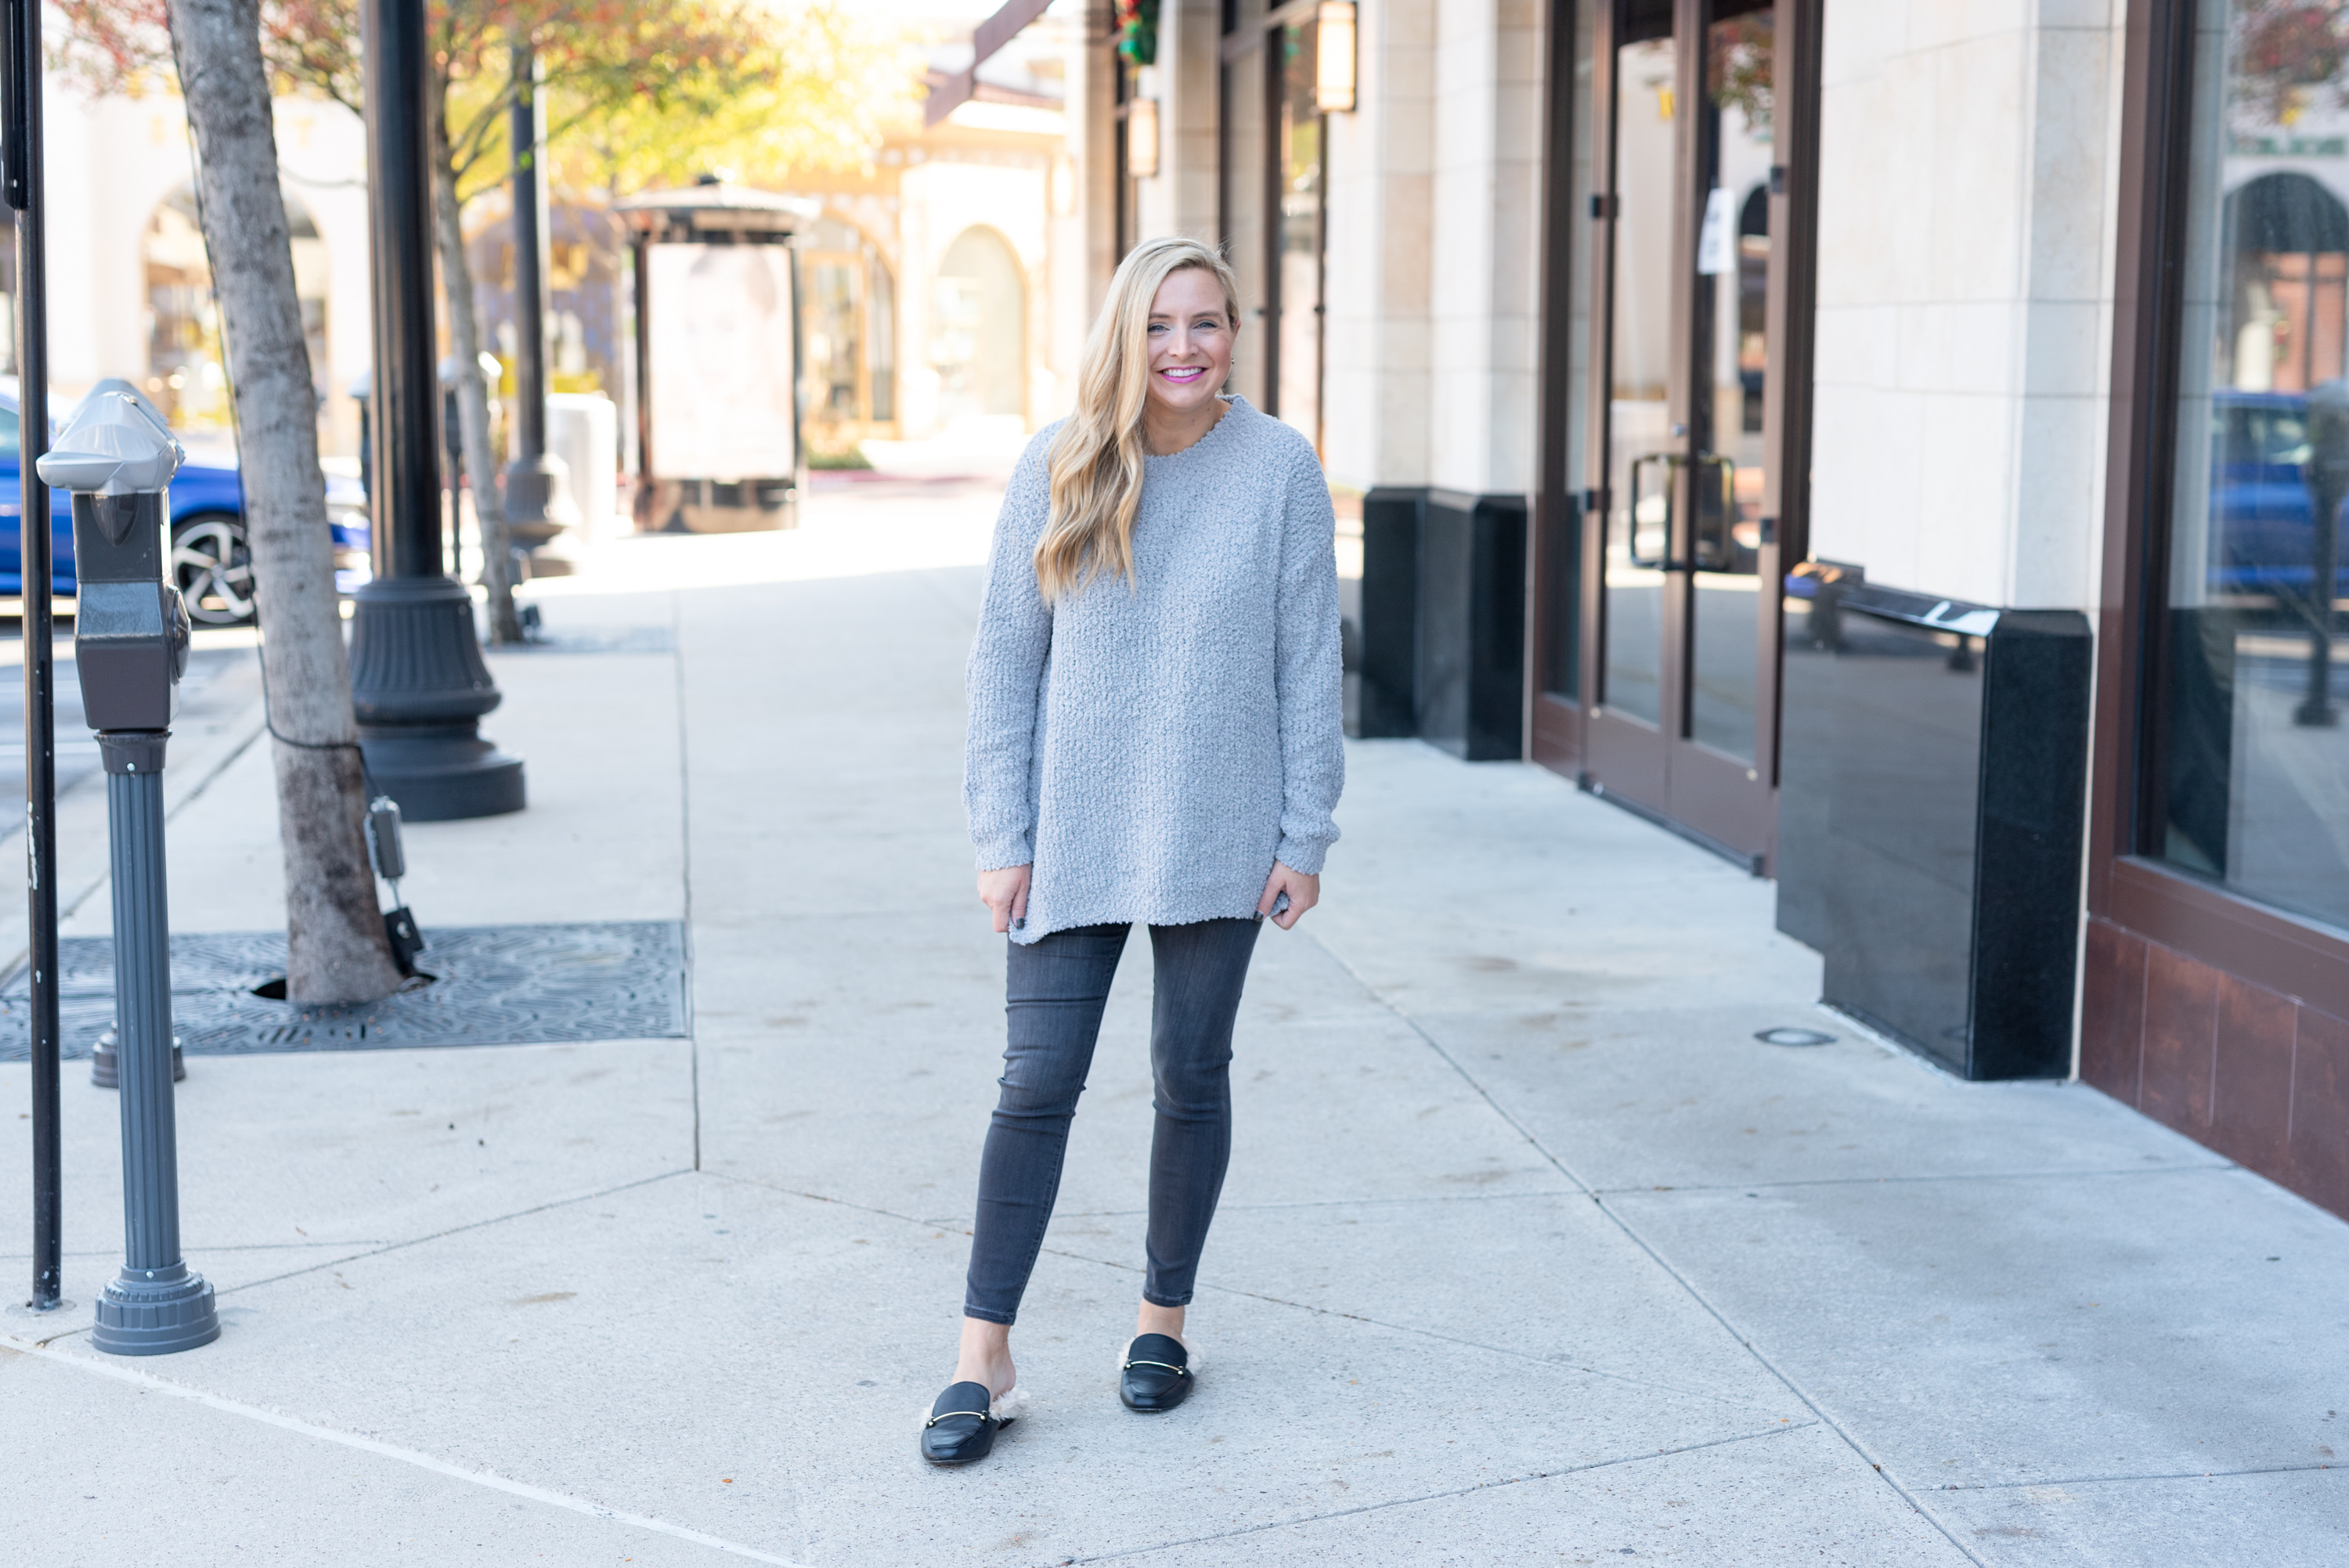 Amazon Haul by popular Houston fashion blog, Fancy Ashley: image of a woman wearing a Amazon Ybenlow Womens Fuzzy Sweater, Amazon Liverpool Women's Sienna Pull-on Ankle Silky Soft Denim Jeans, and Target Women's Rebe Faux Fur Mules.